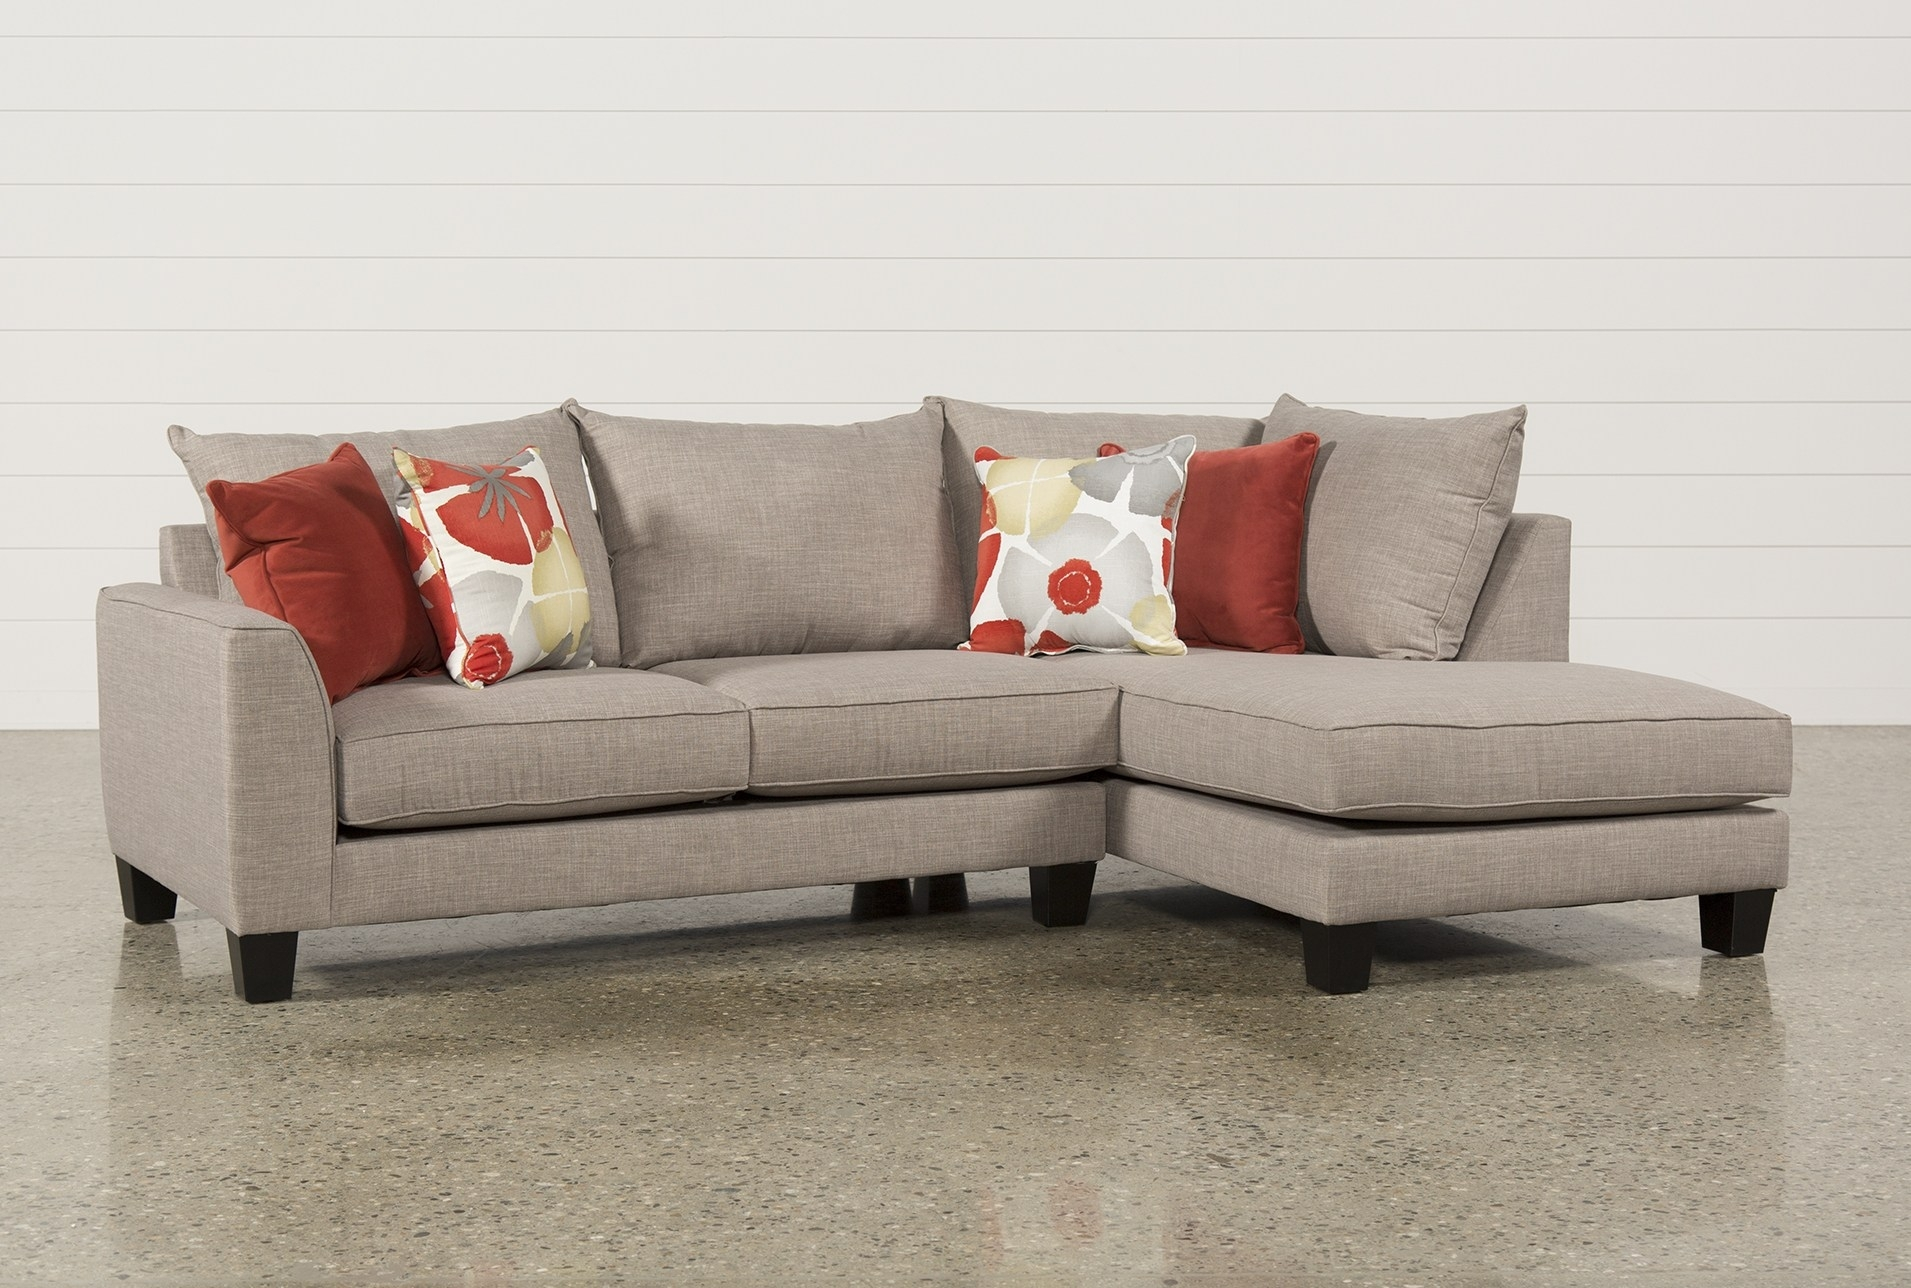 Mcdade Graphite 2 Piece Sectional – Geek Tattoos In Arrowmask 2 Piece Sectionals With Laf Chaise (Image 15 of 25)